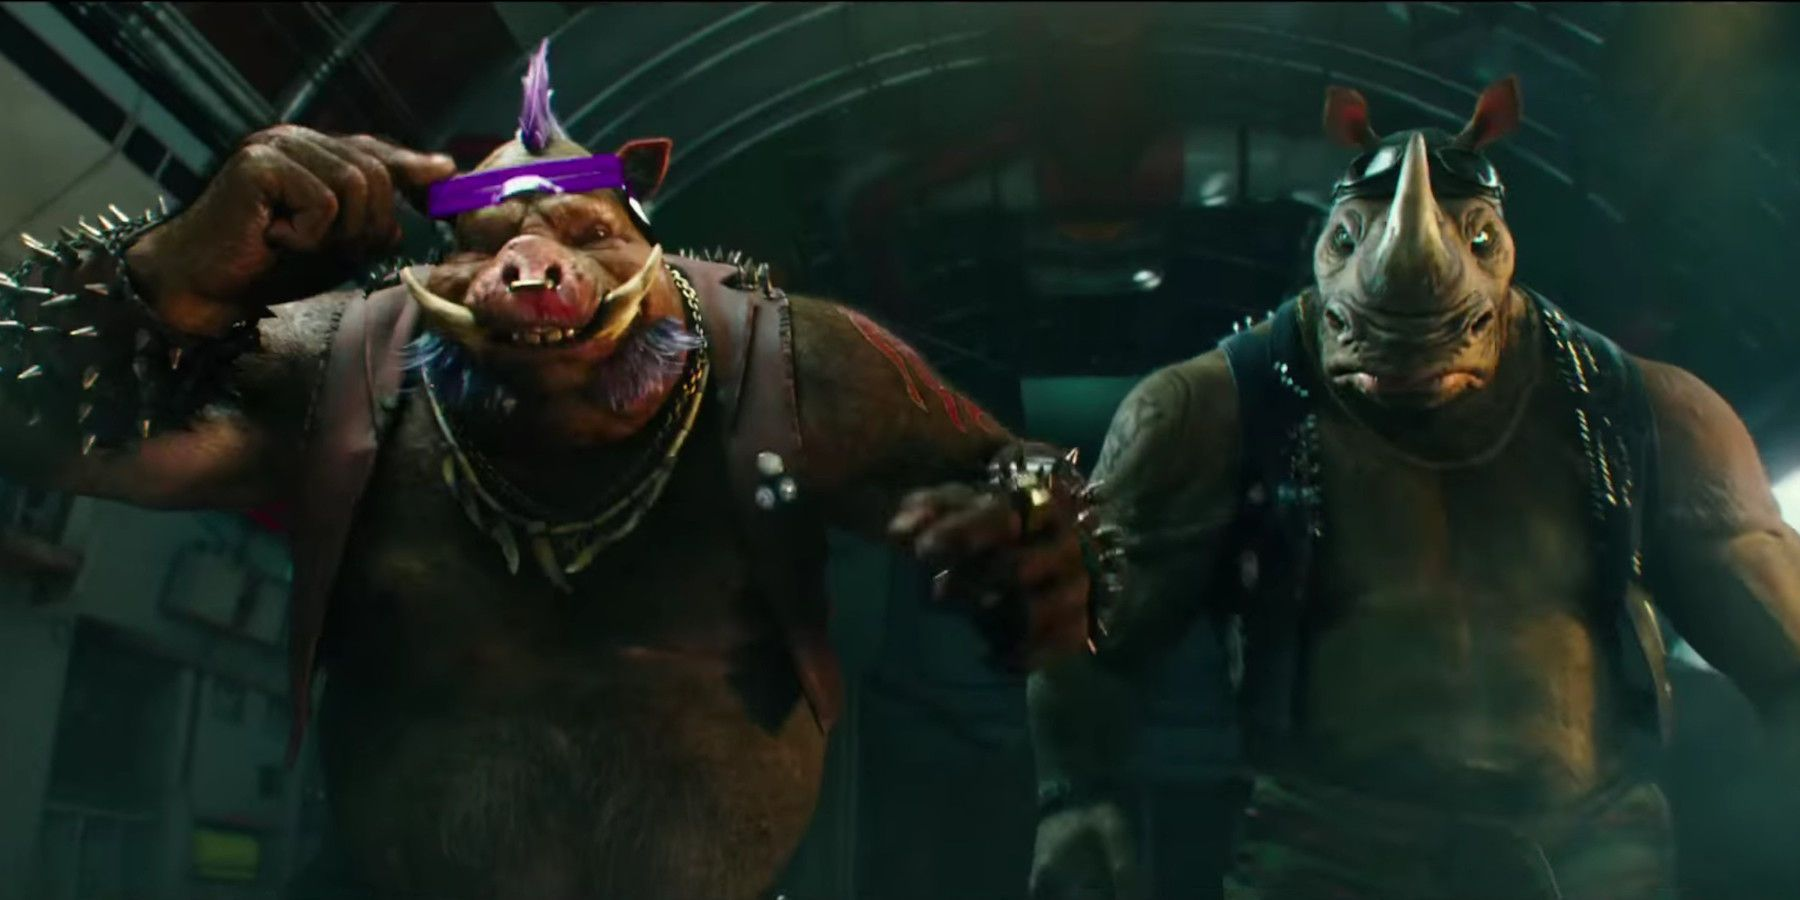 TMNT: 11 Things You Need To Know About Bebop And Rocksteady